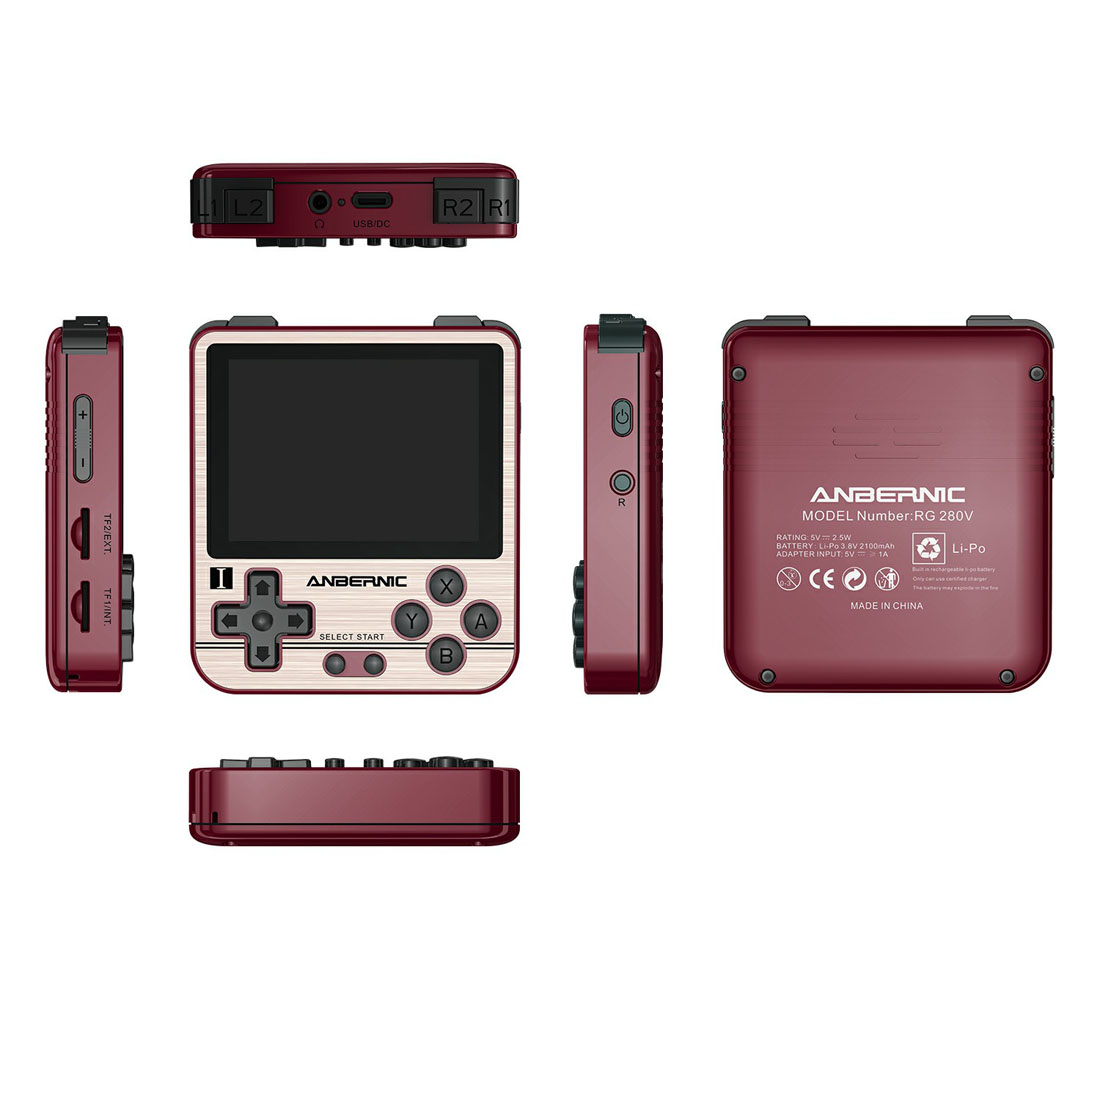 Anbernic RG280V Handheld 10,000 Games Portable Retro Console 2.8-Inch IPS Screen (64G)